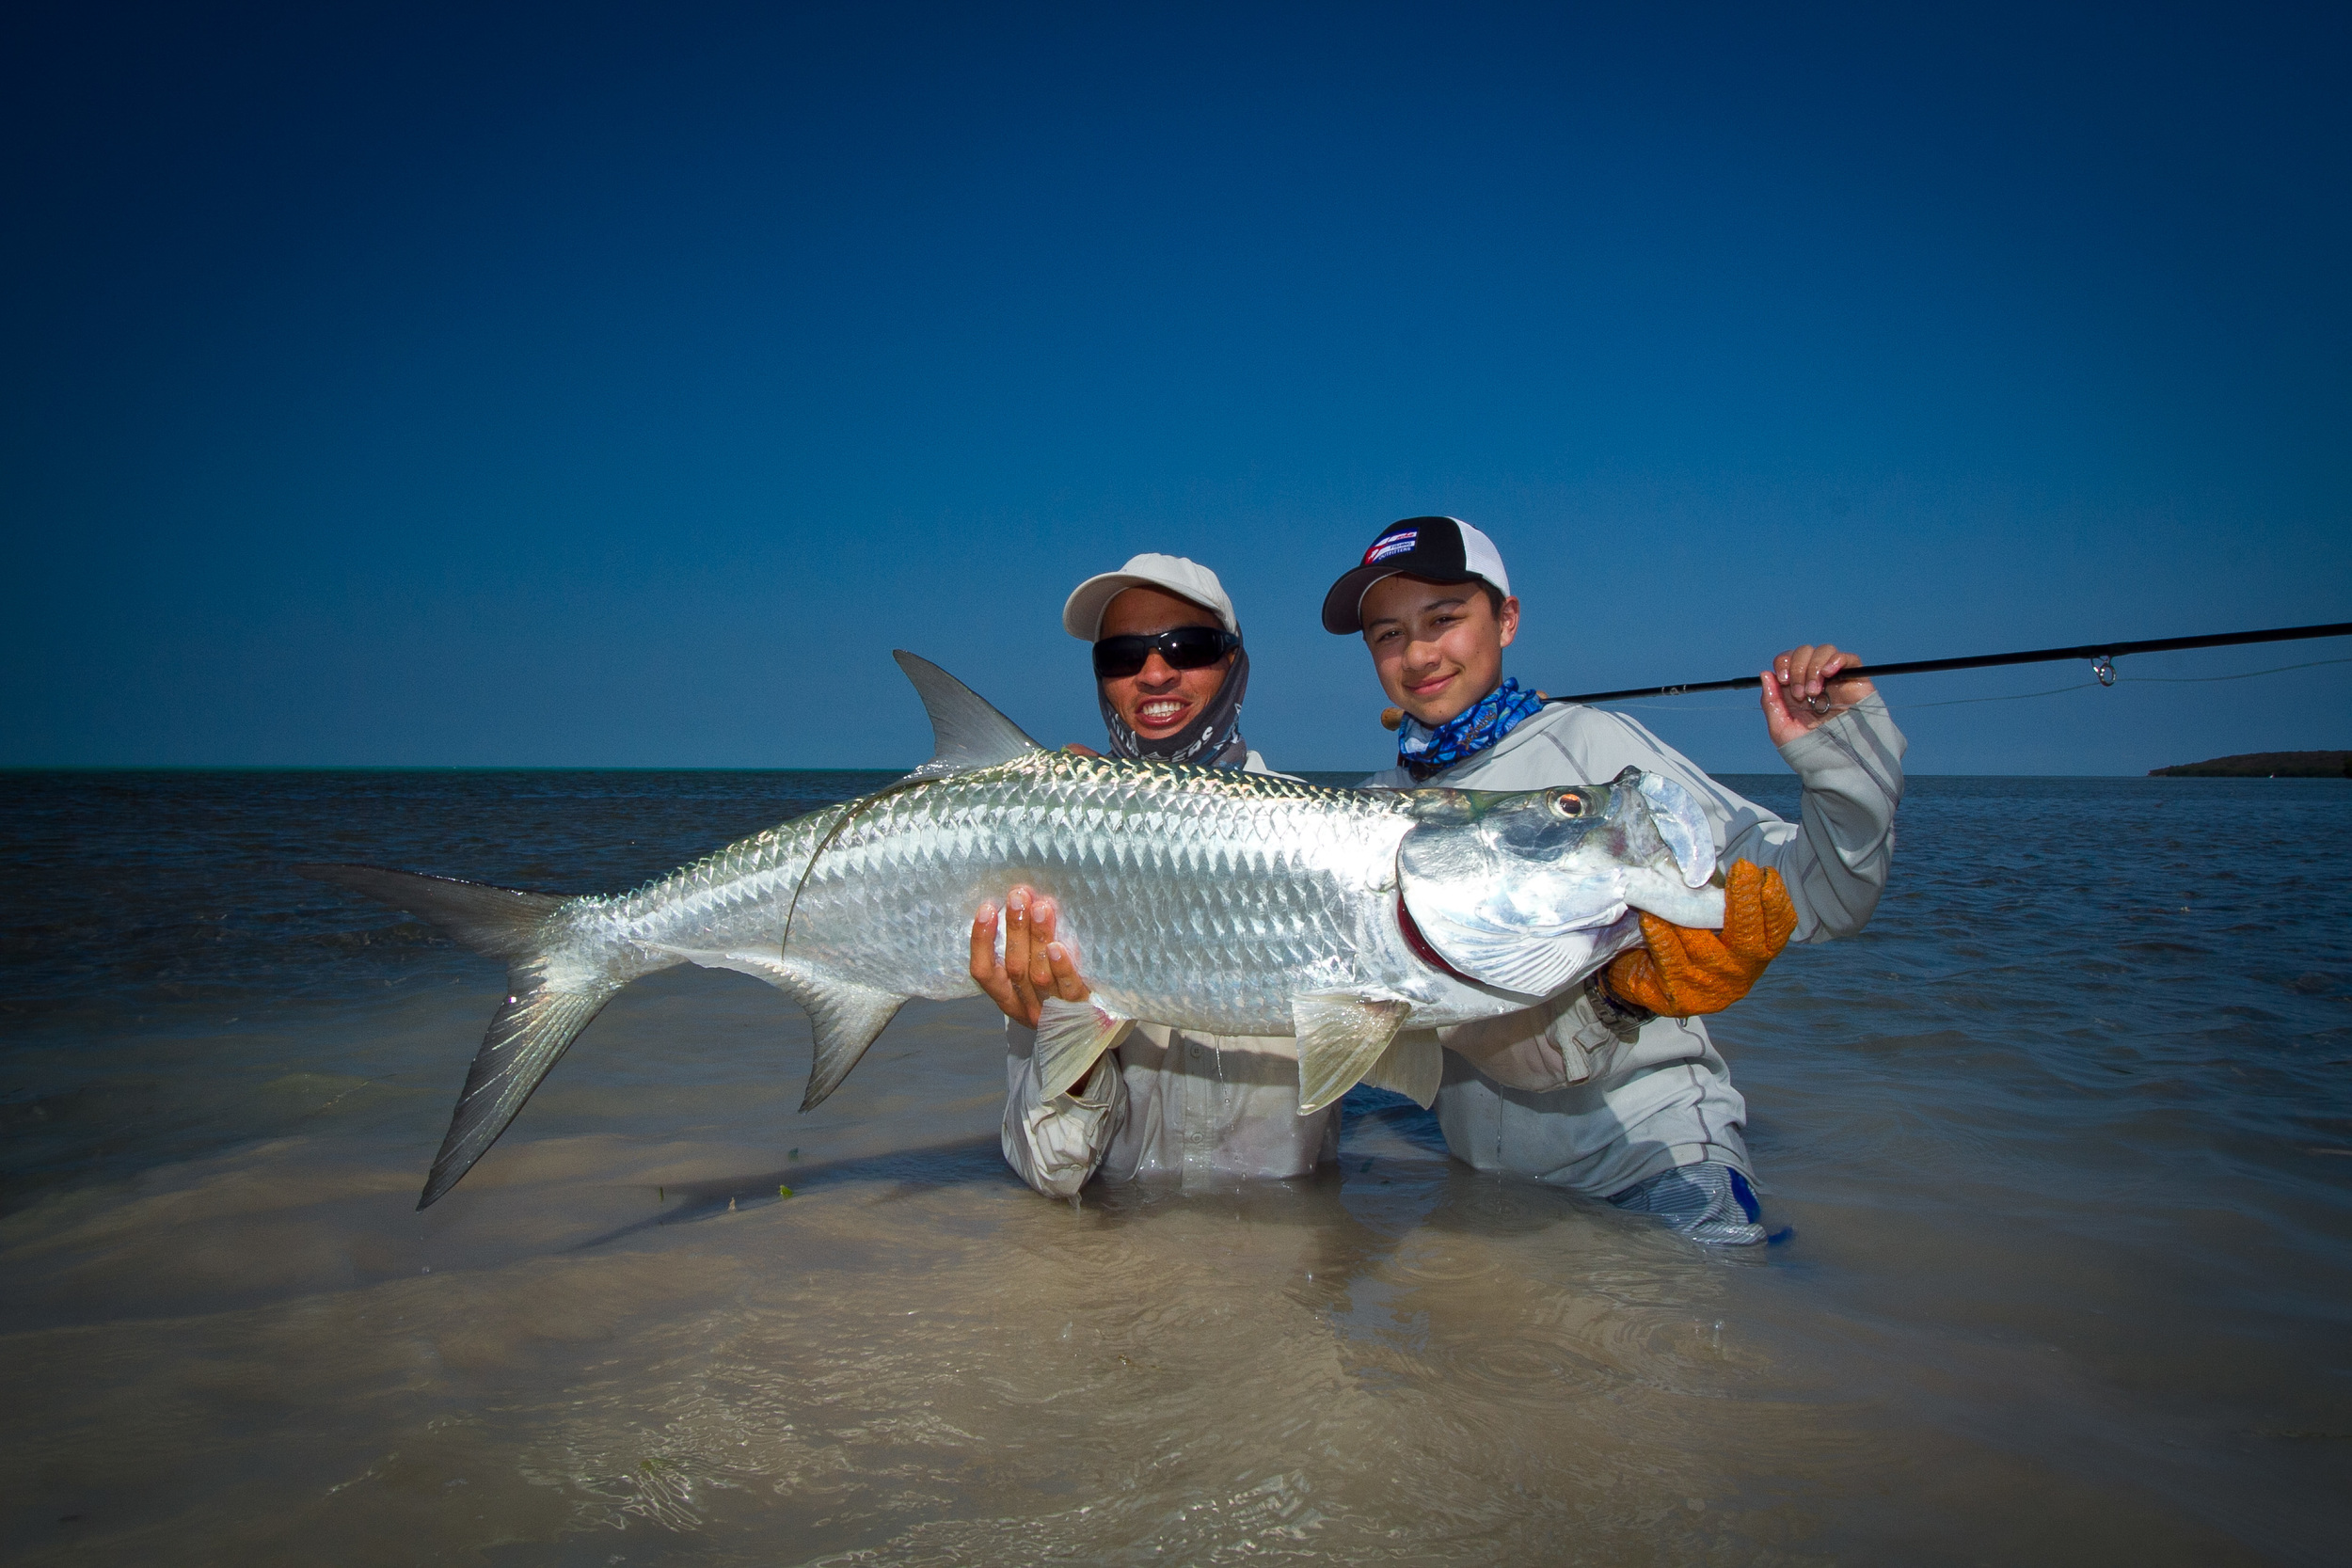 Yoandre and Teddy proudly showing off a landed Tarpon, Cayo Cruz, Cuba